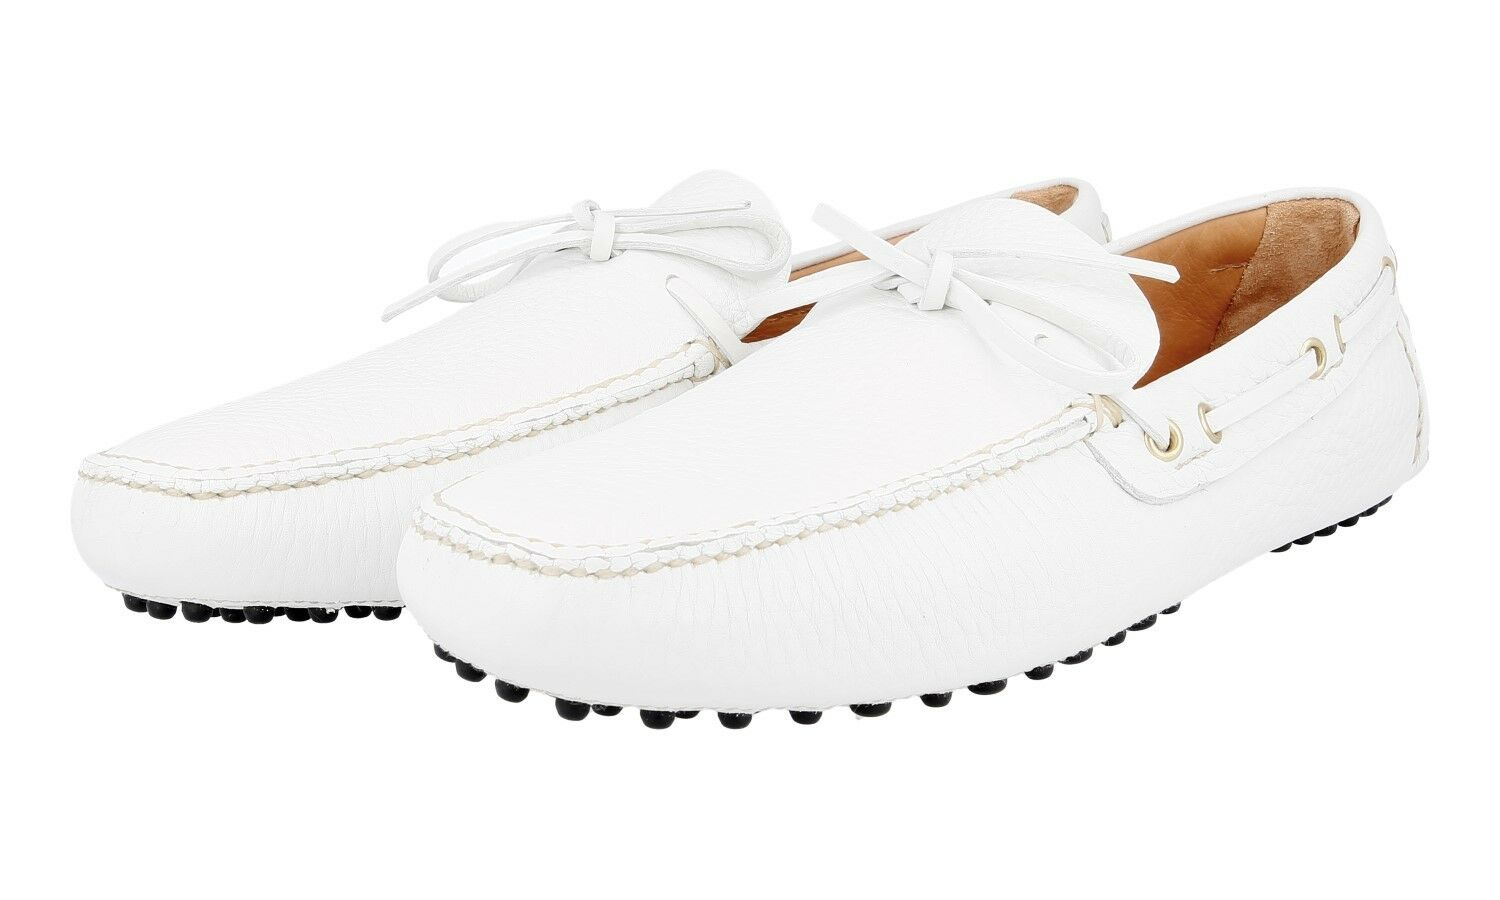 L SO CAR SHOE by Prada Slipper   kud006 BIANCO NUOVO NEW 10,5 44,5 45